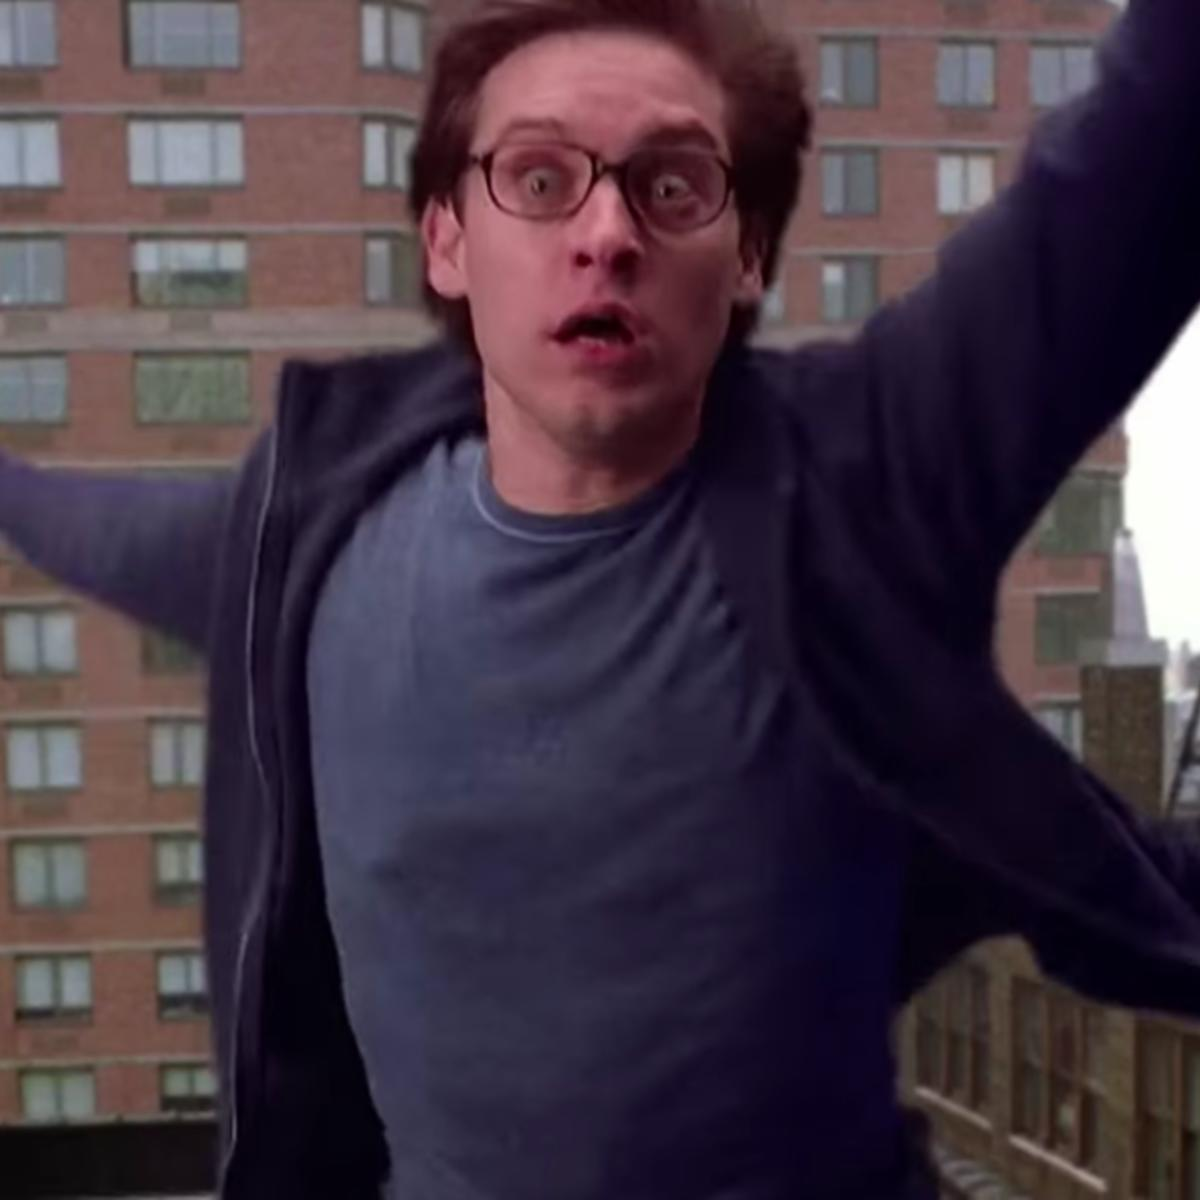 Spider-Man 2 Toby Maguire